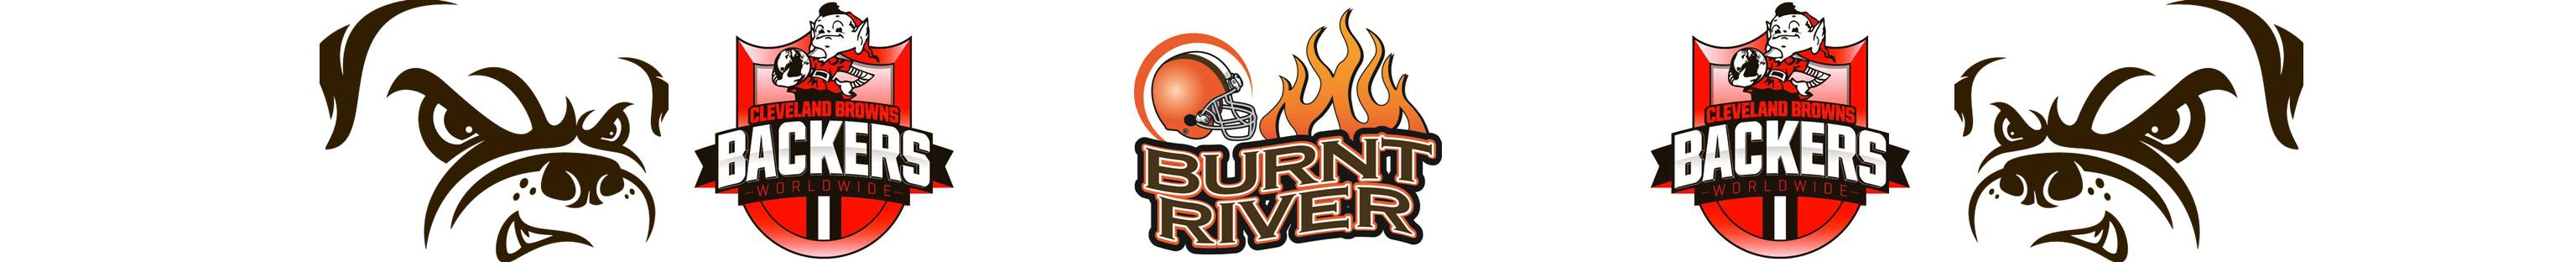 Burnt River Browns Backers